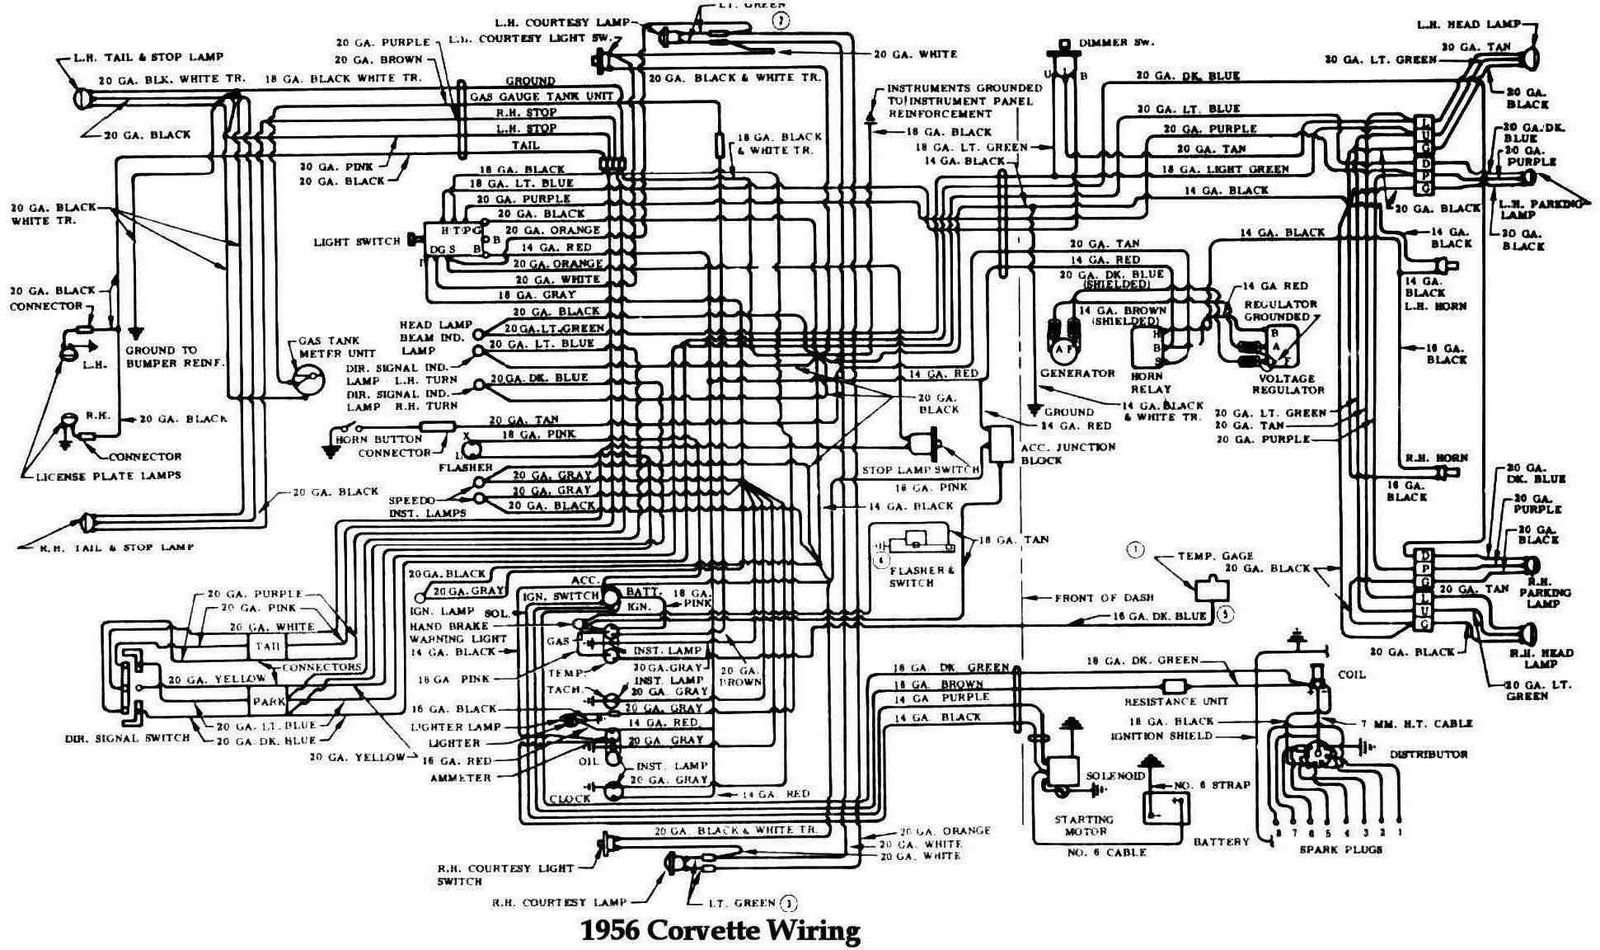 1969 chevrolet corvette wiring diagram simple wiring diagram schema [ 1600 x 950 Pixel ]